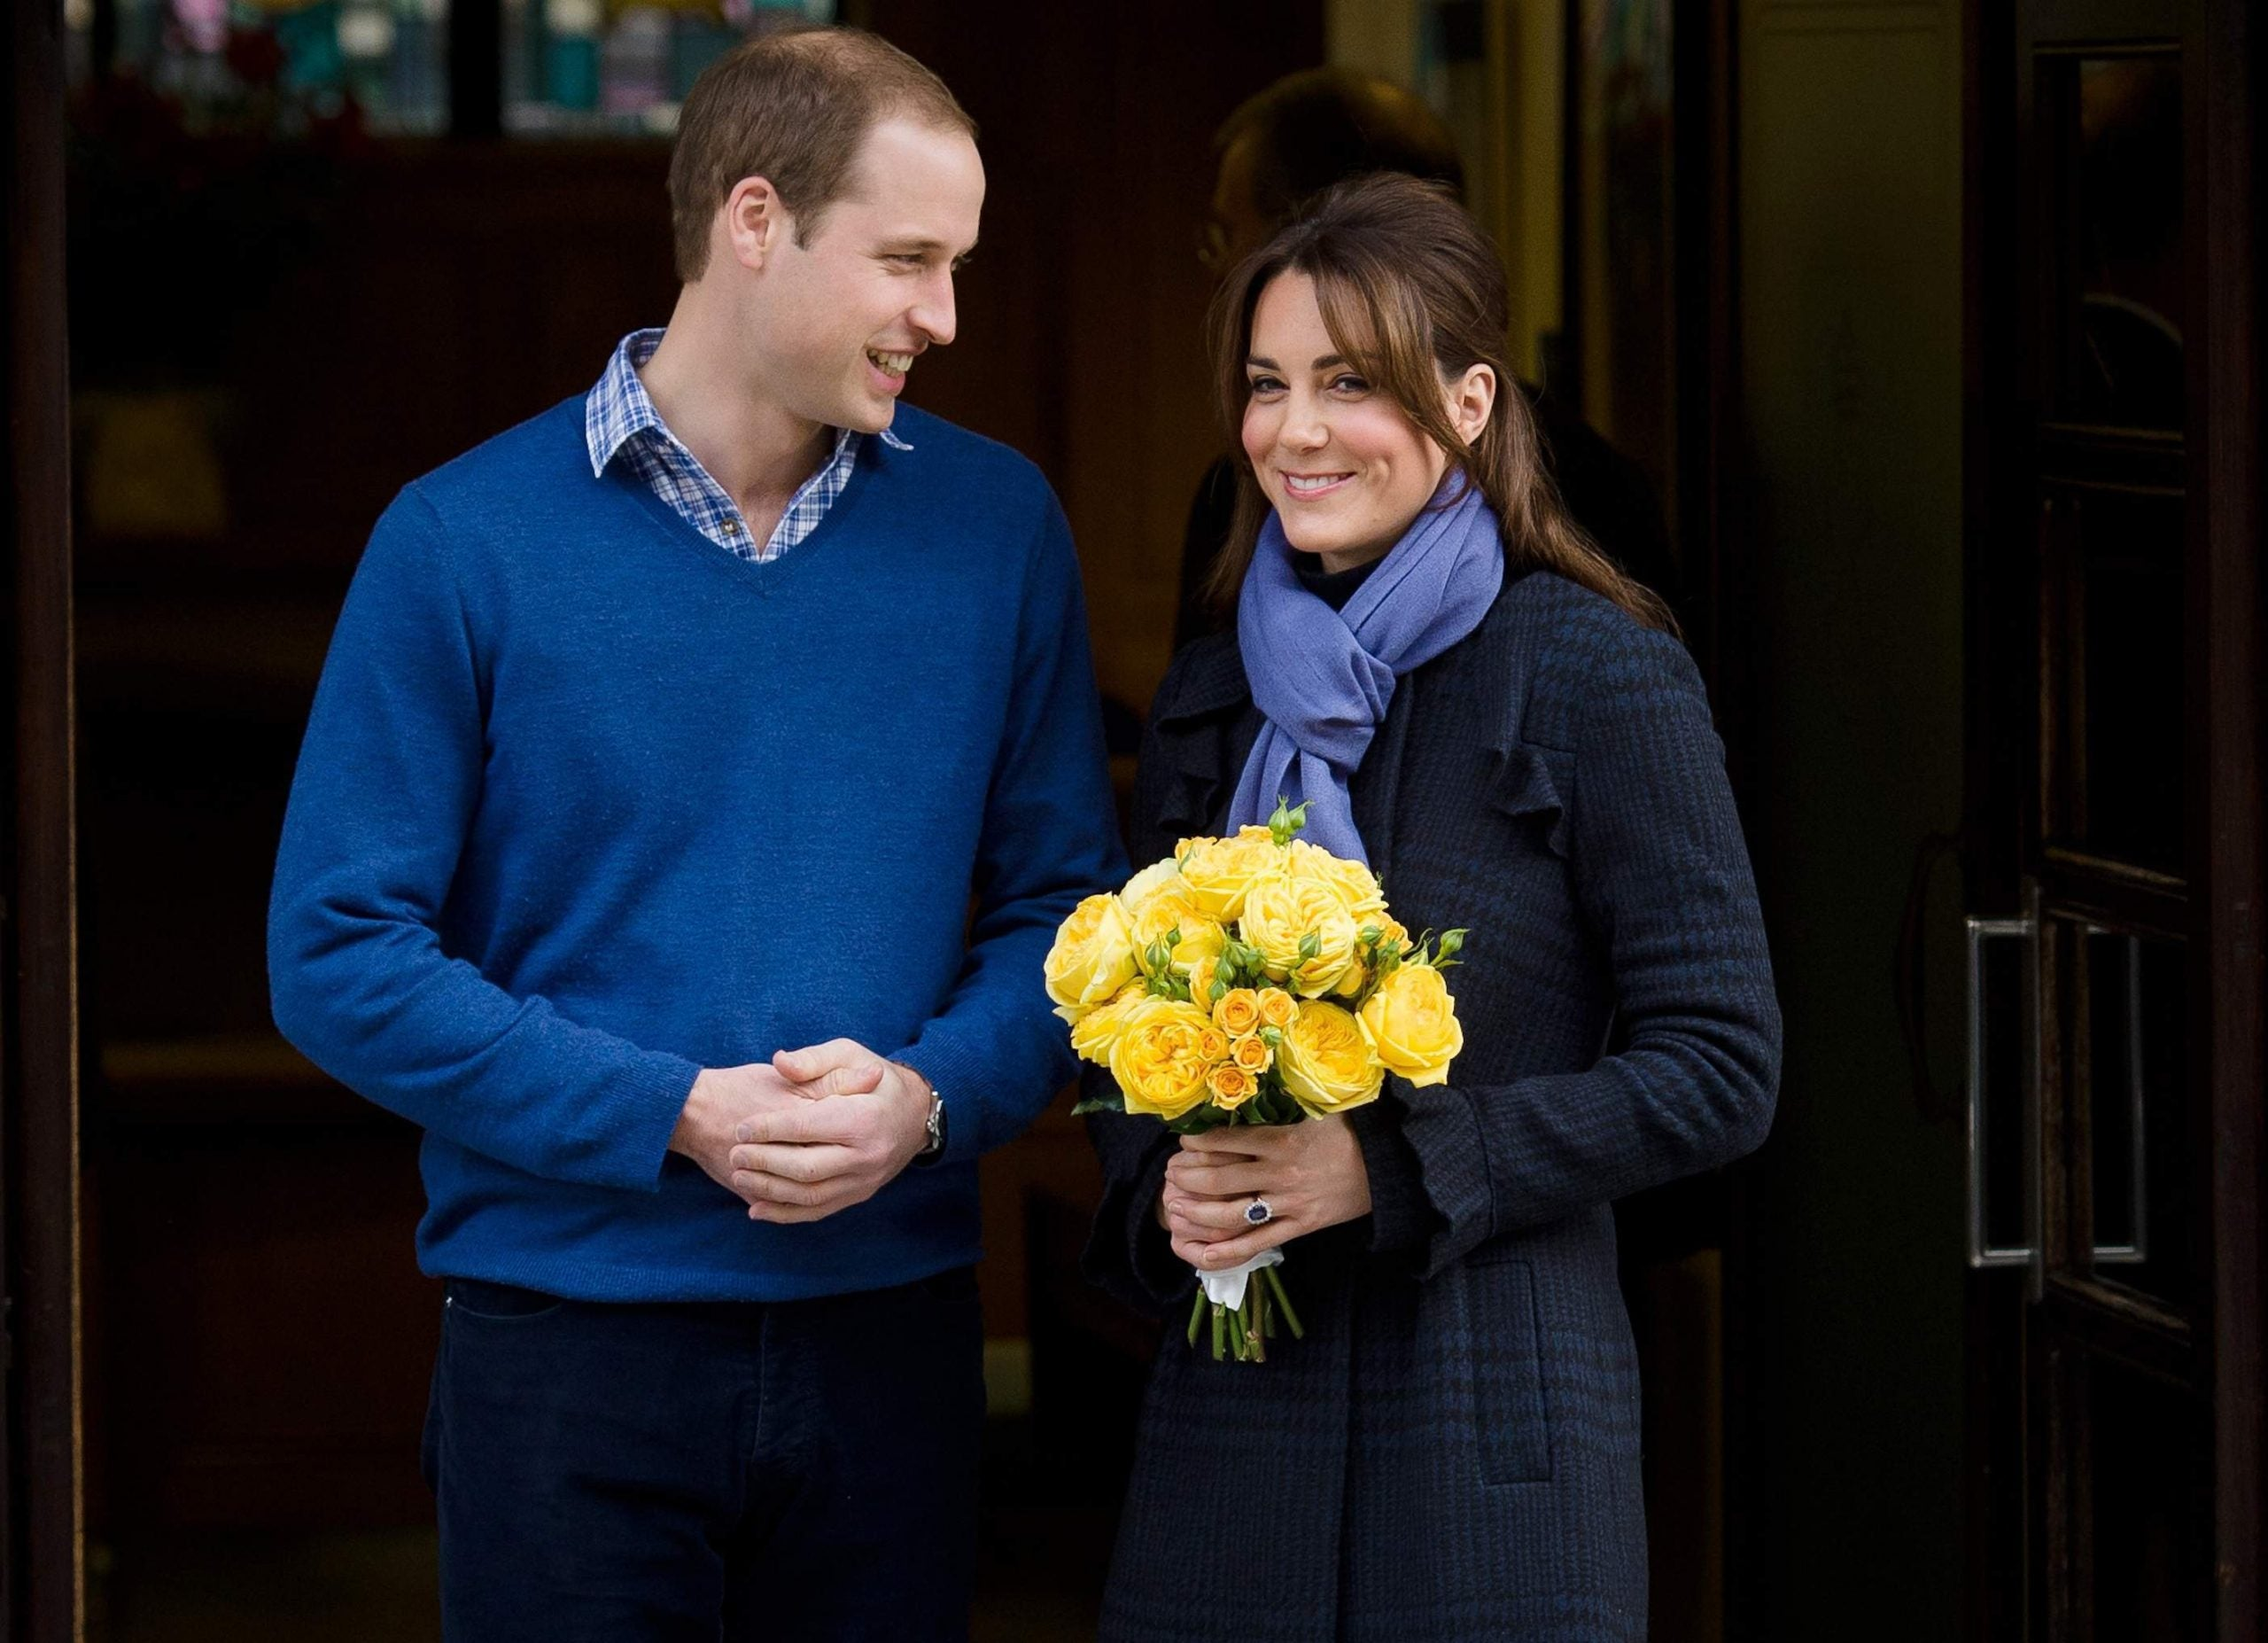 Did I magically make Kate Middleton pregnant? Well – not quite